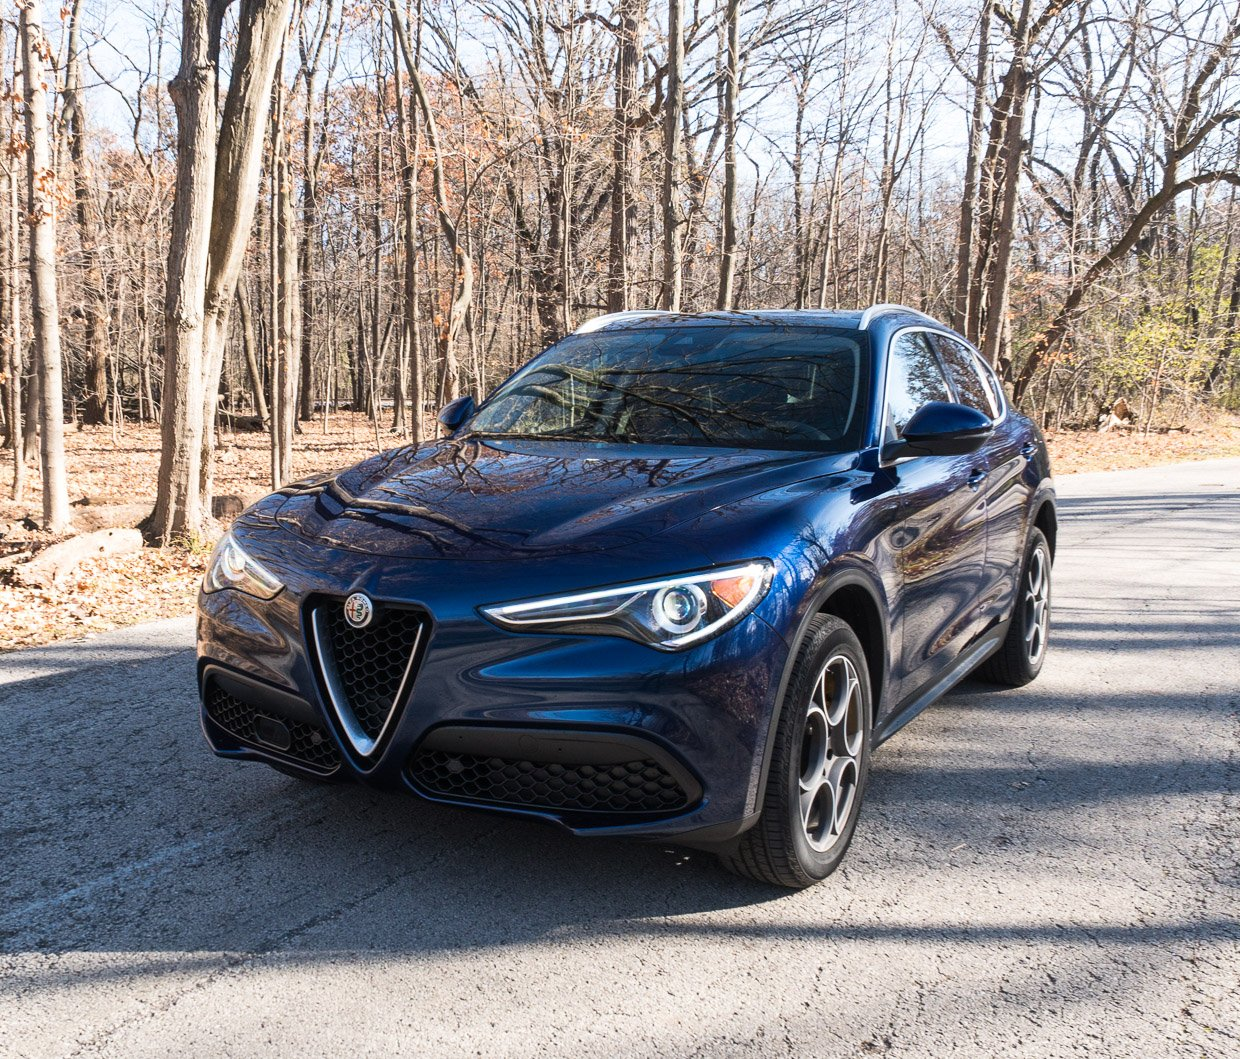 2018 alfa romeo stelvio review a beautiful blue italian 95 octane. Black Bedroom Furniture Sets. Home Design Ideas